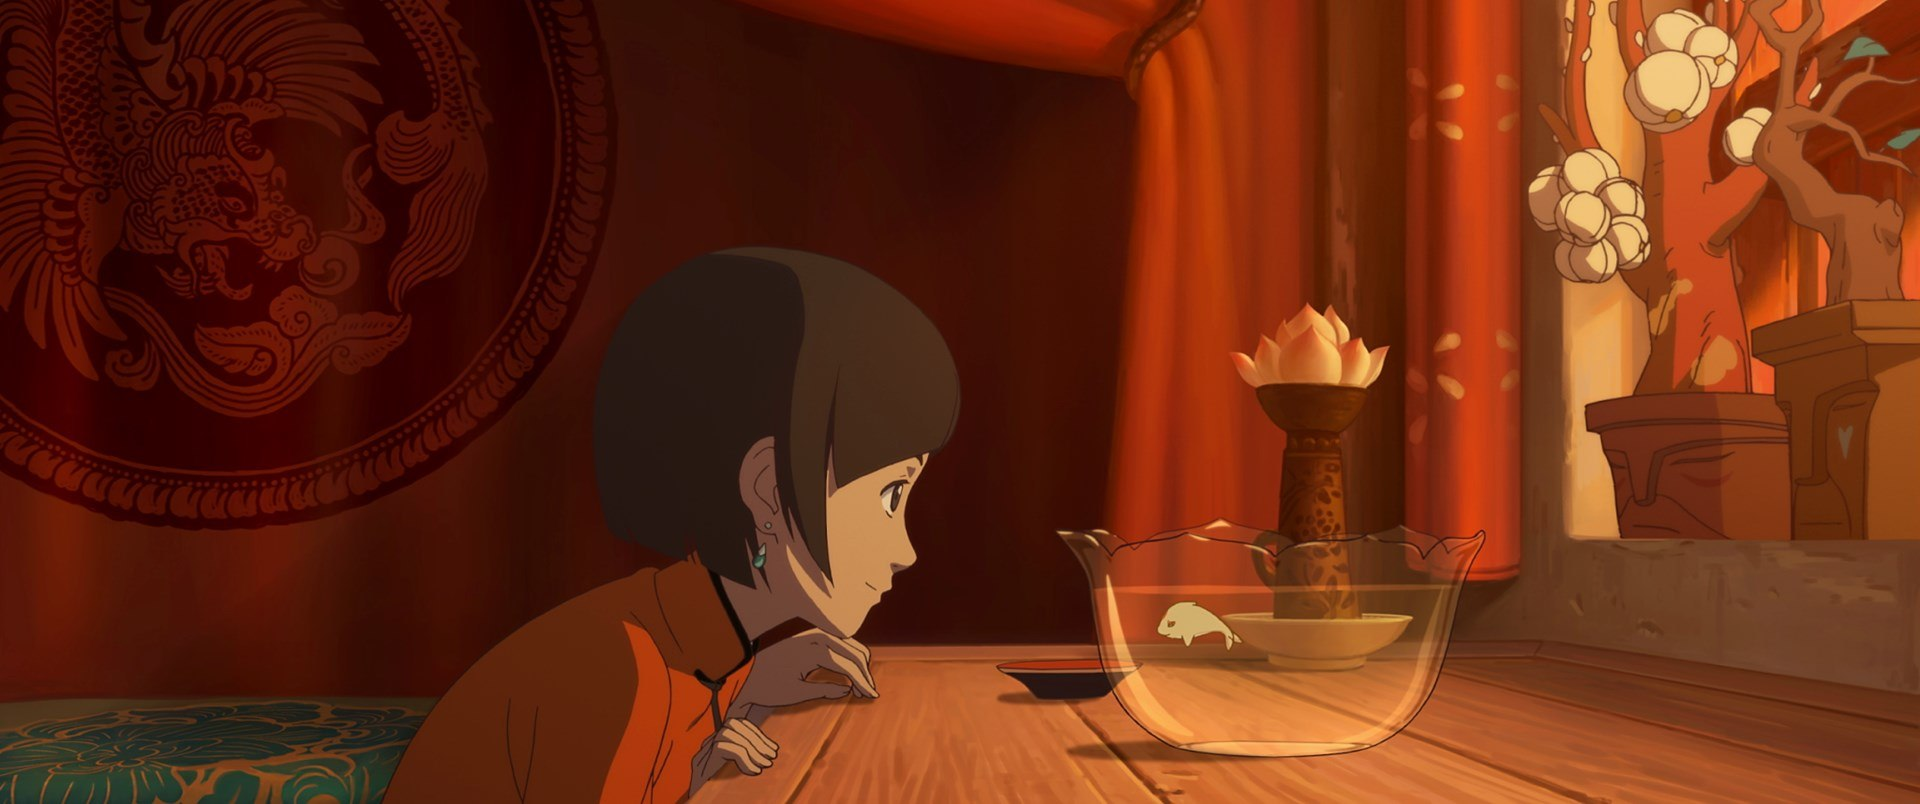 A New Milestone for Chinese Feature Animation: 'Big Fish & Begonia